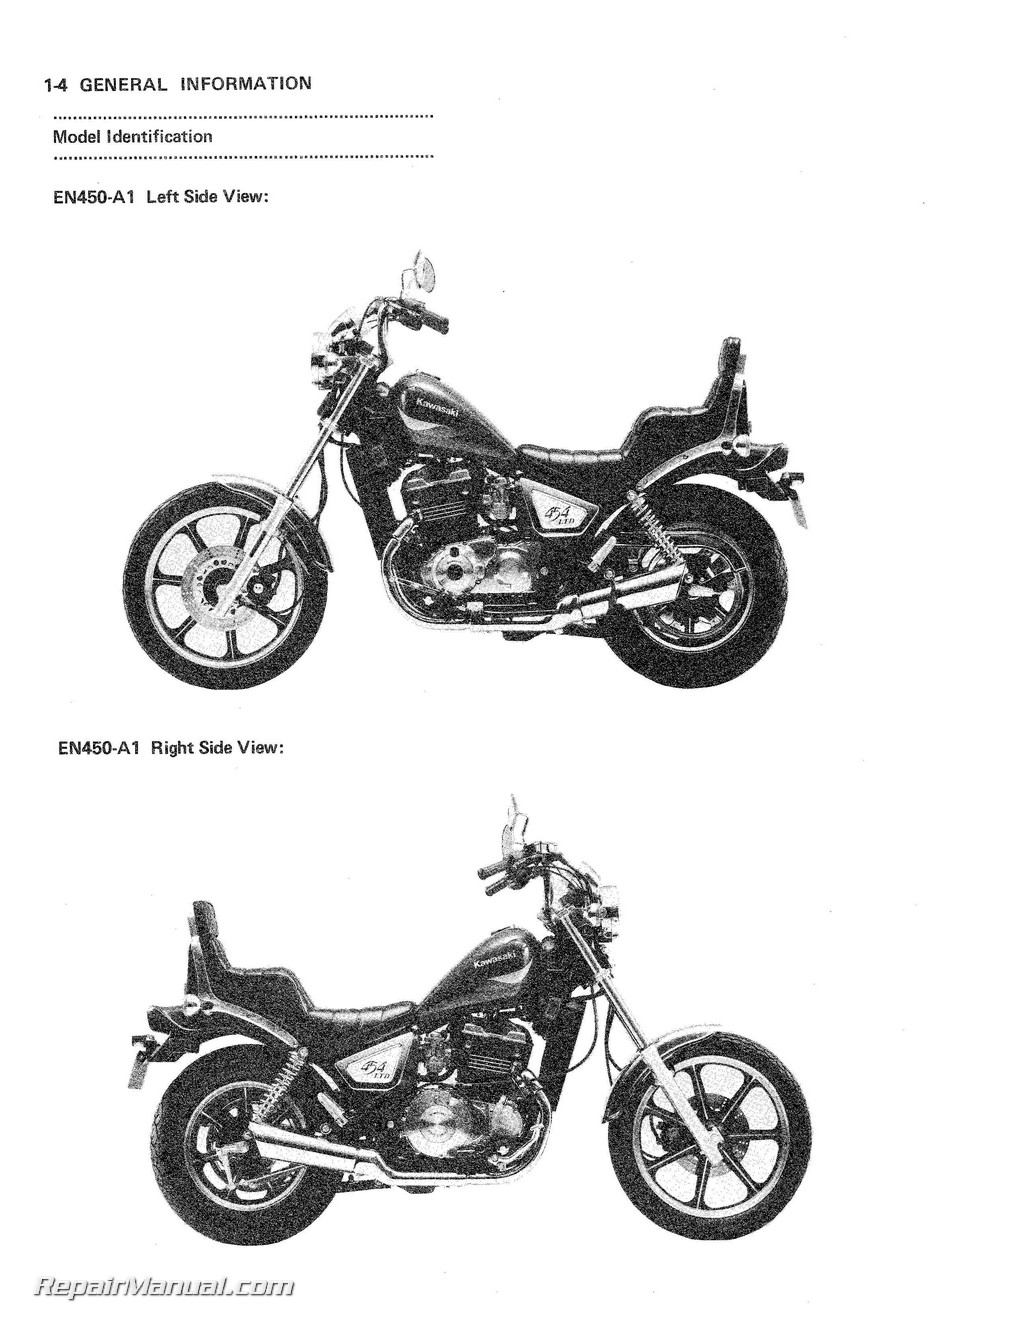 1984 kawasaki en450a1 454 ltd motorcycle service manual